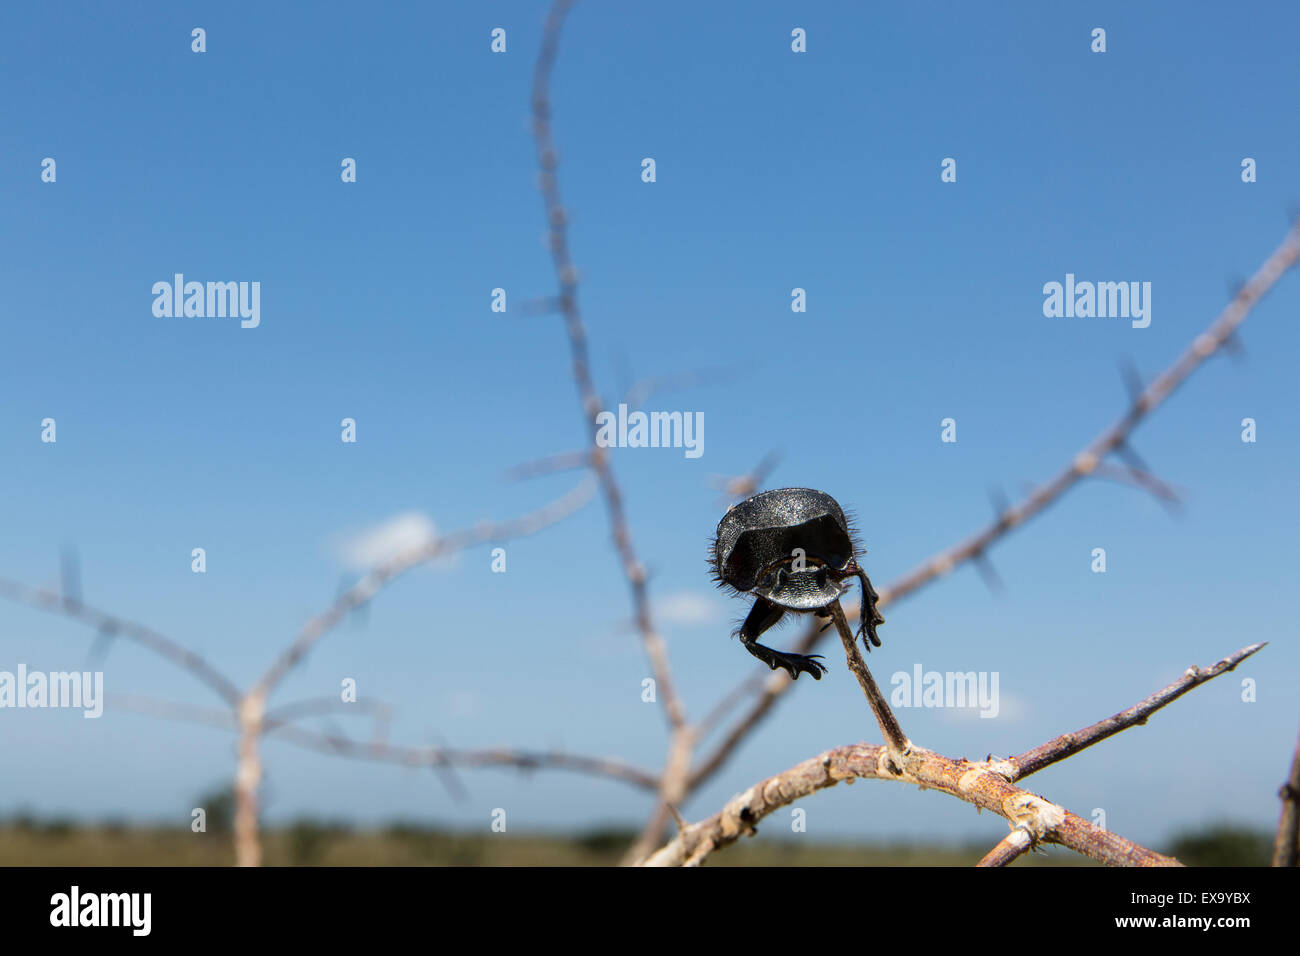 South Africa, Kruger National Park, Dung Beetle, (Scarabeus sp.) impaled on sharp thorn by Southern Fiscal Shrike - Stock Image